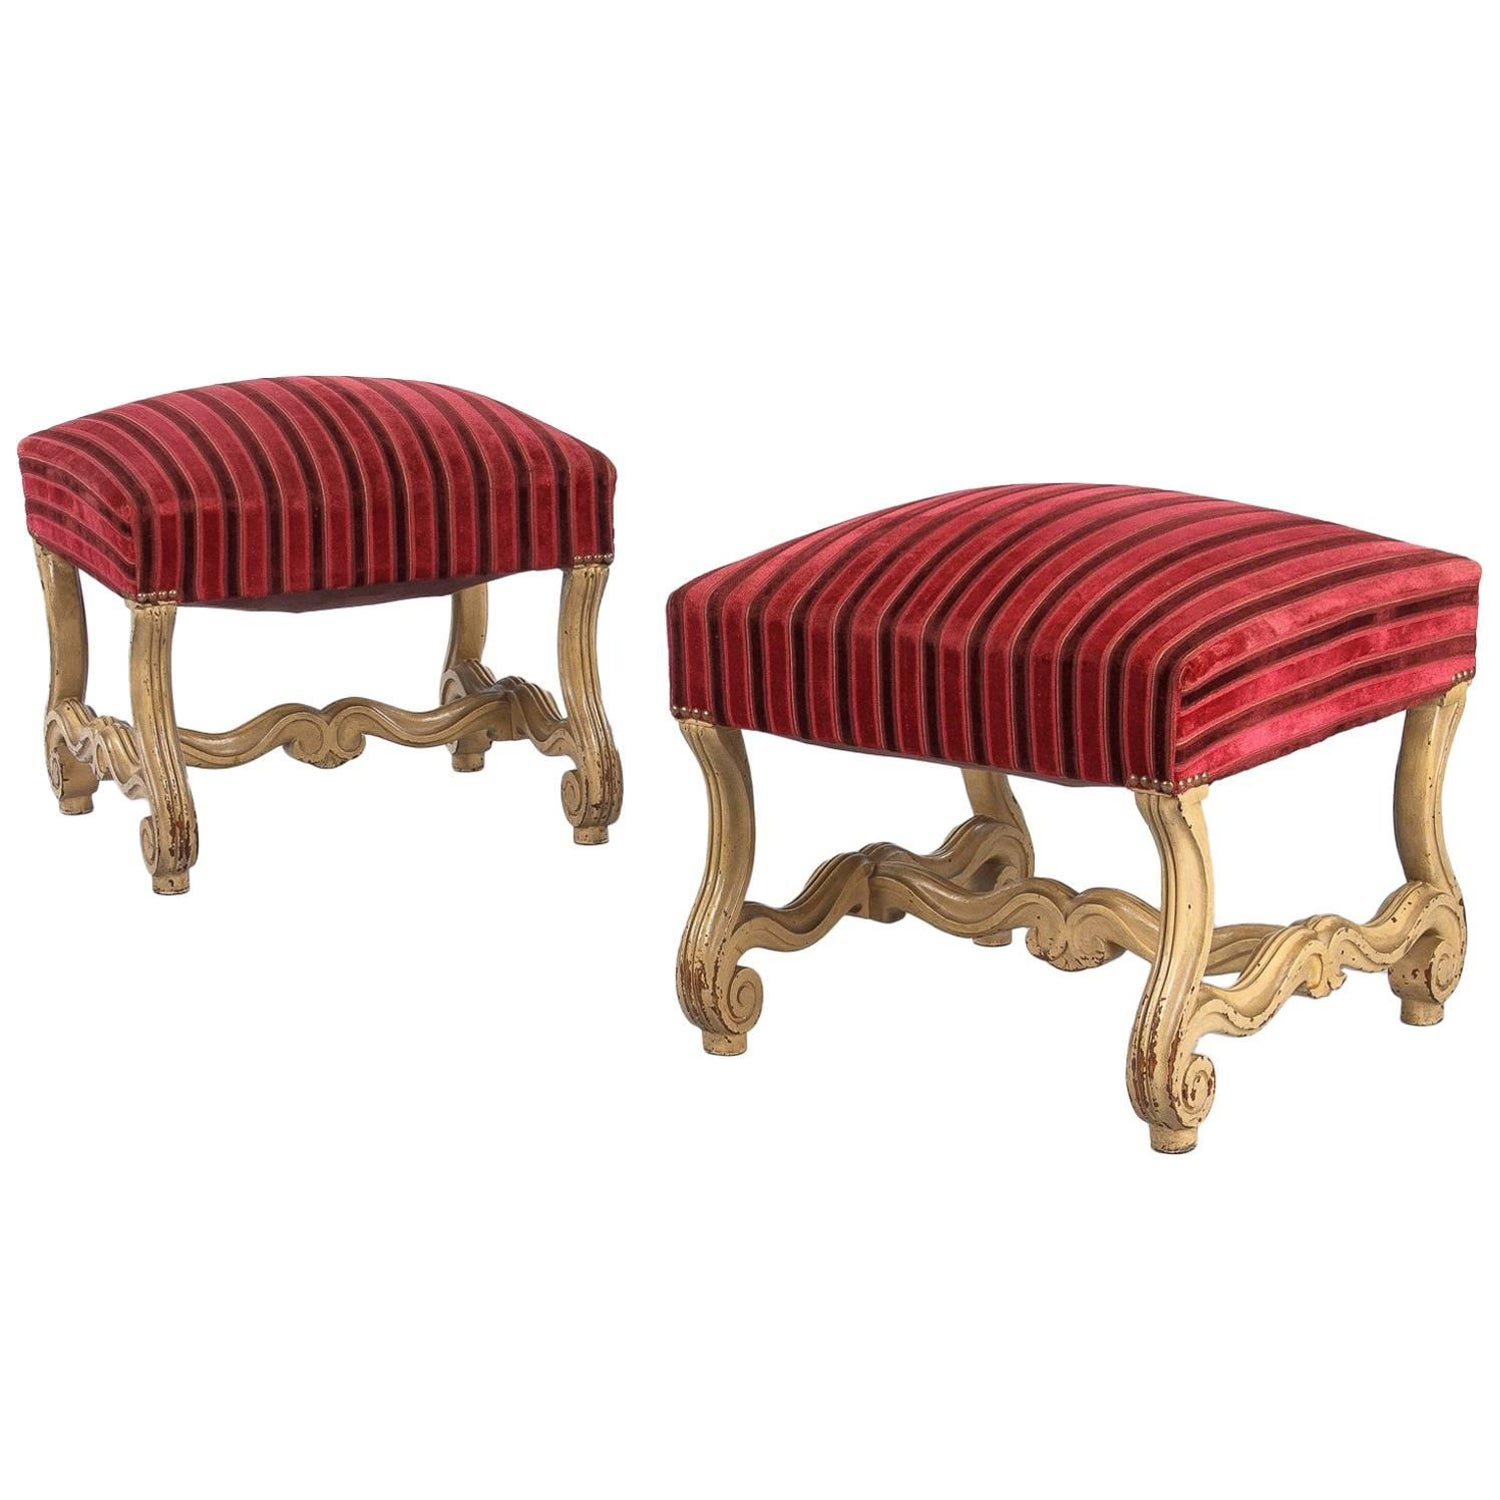 Louis XIV Seating - 173 For Sale at 1stdibs